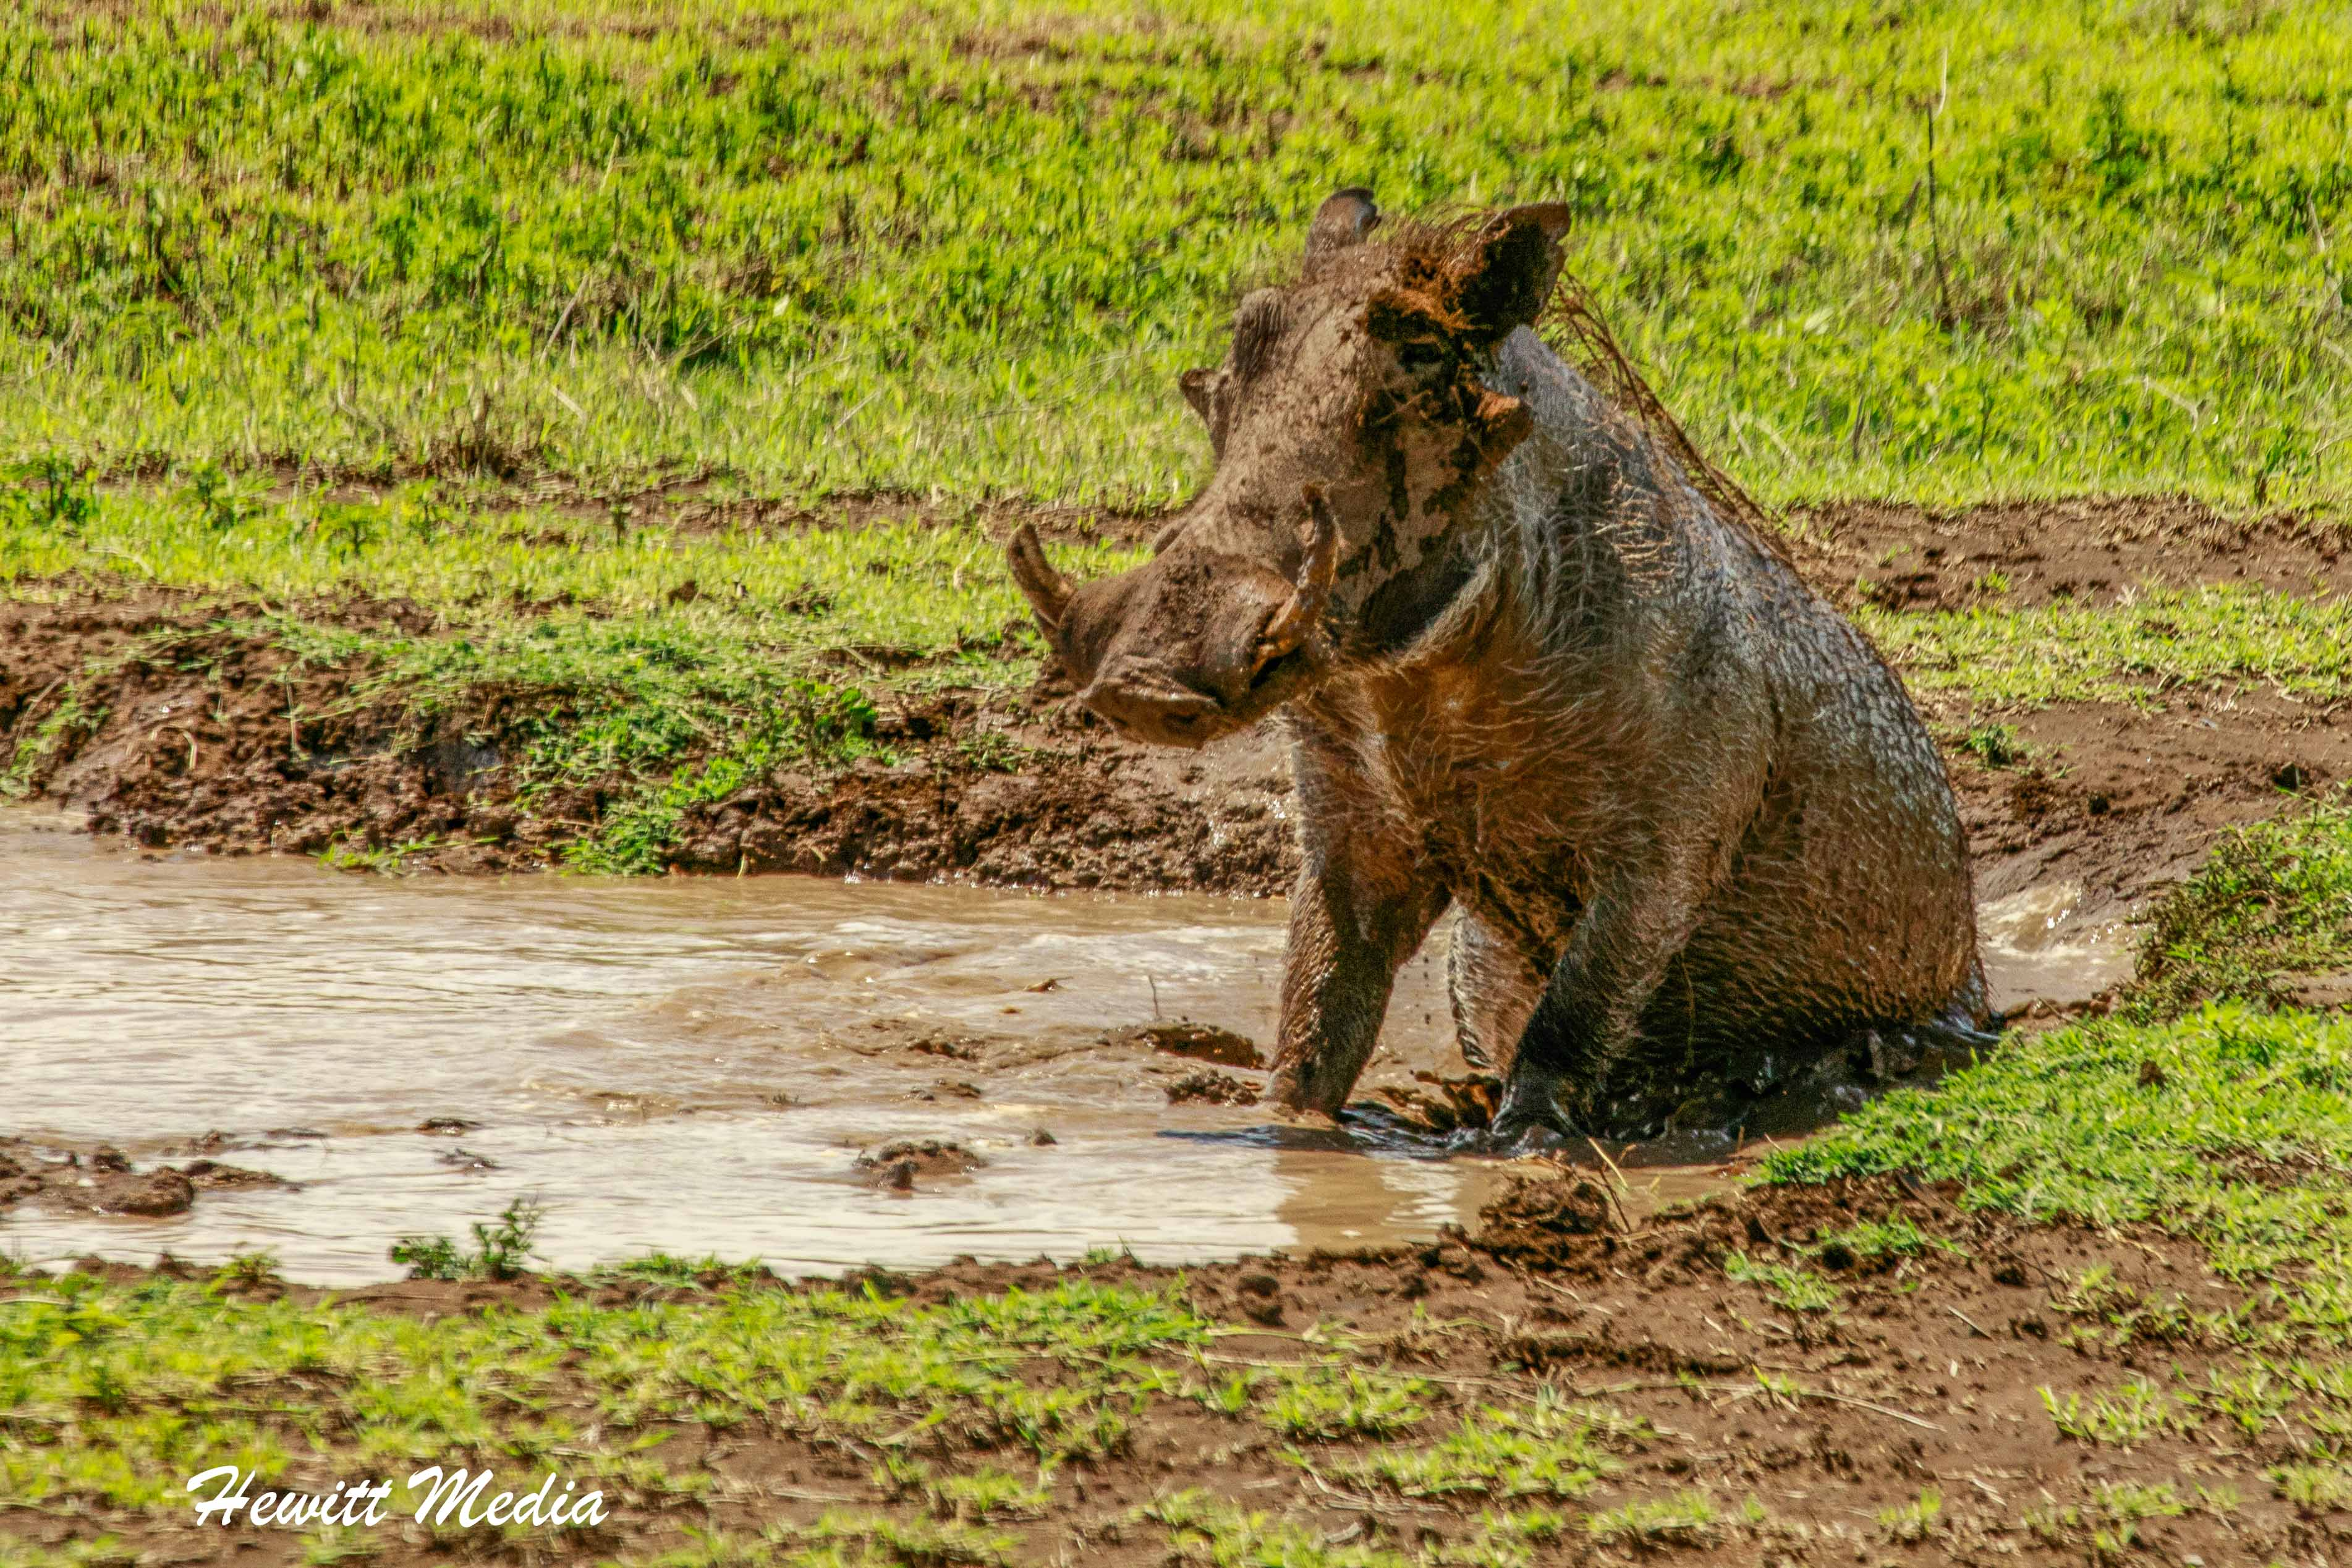 A warthog cooling off inside the Ngorongoro Crater